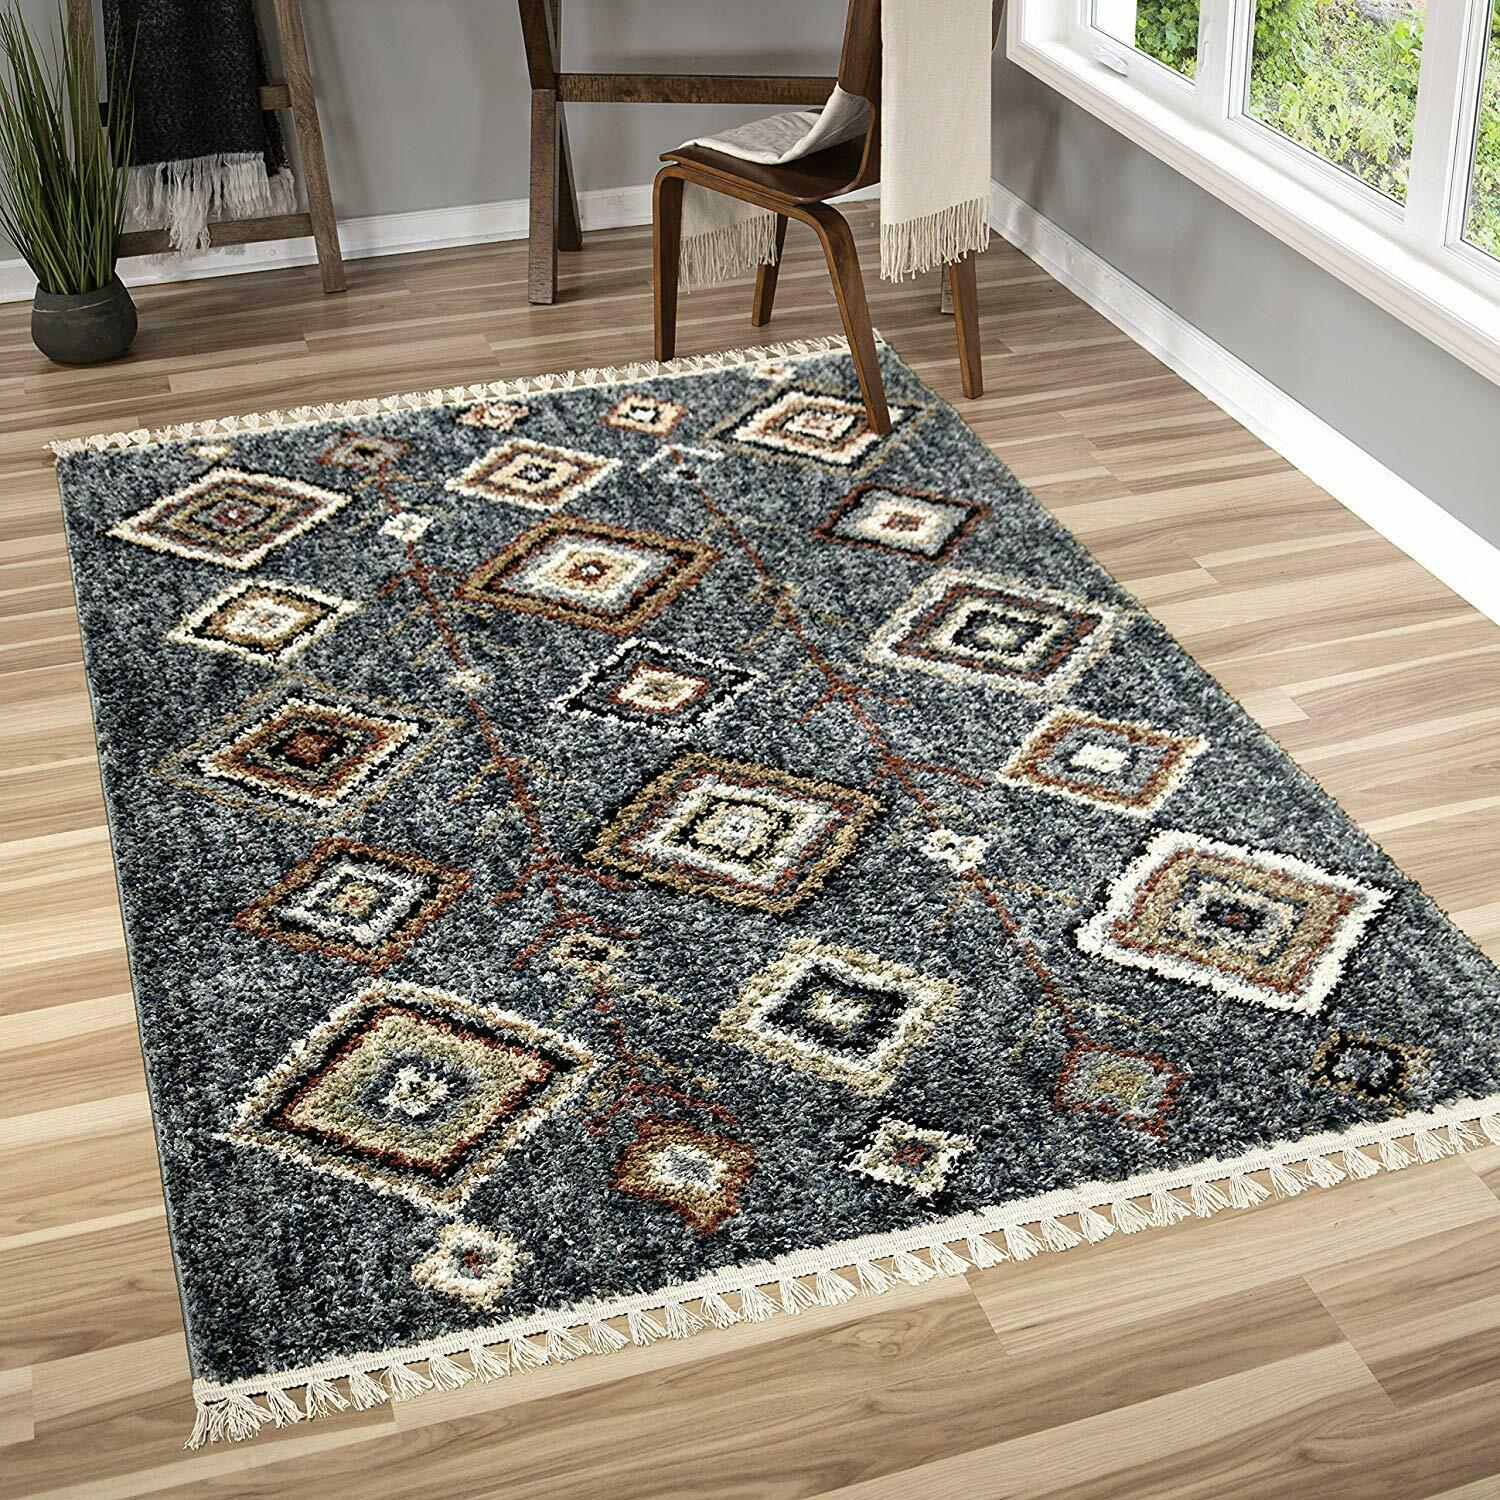 Details About Rugs Area Rugs Carpets 8x10 Rug Floor Modern Bedroom Blue Large Living Room Rugs